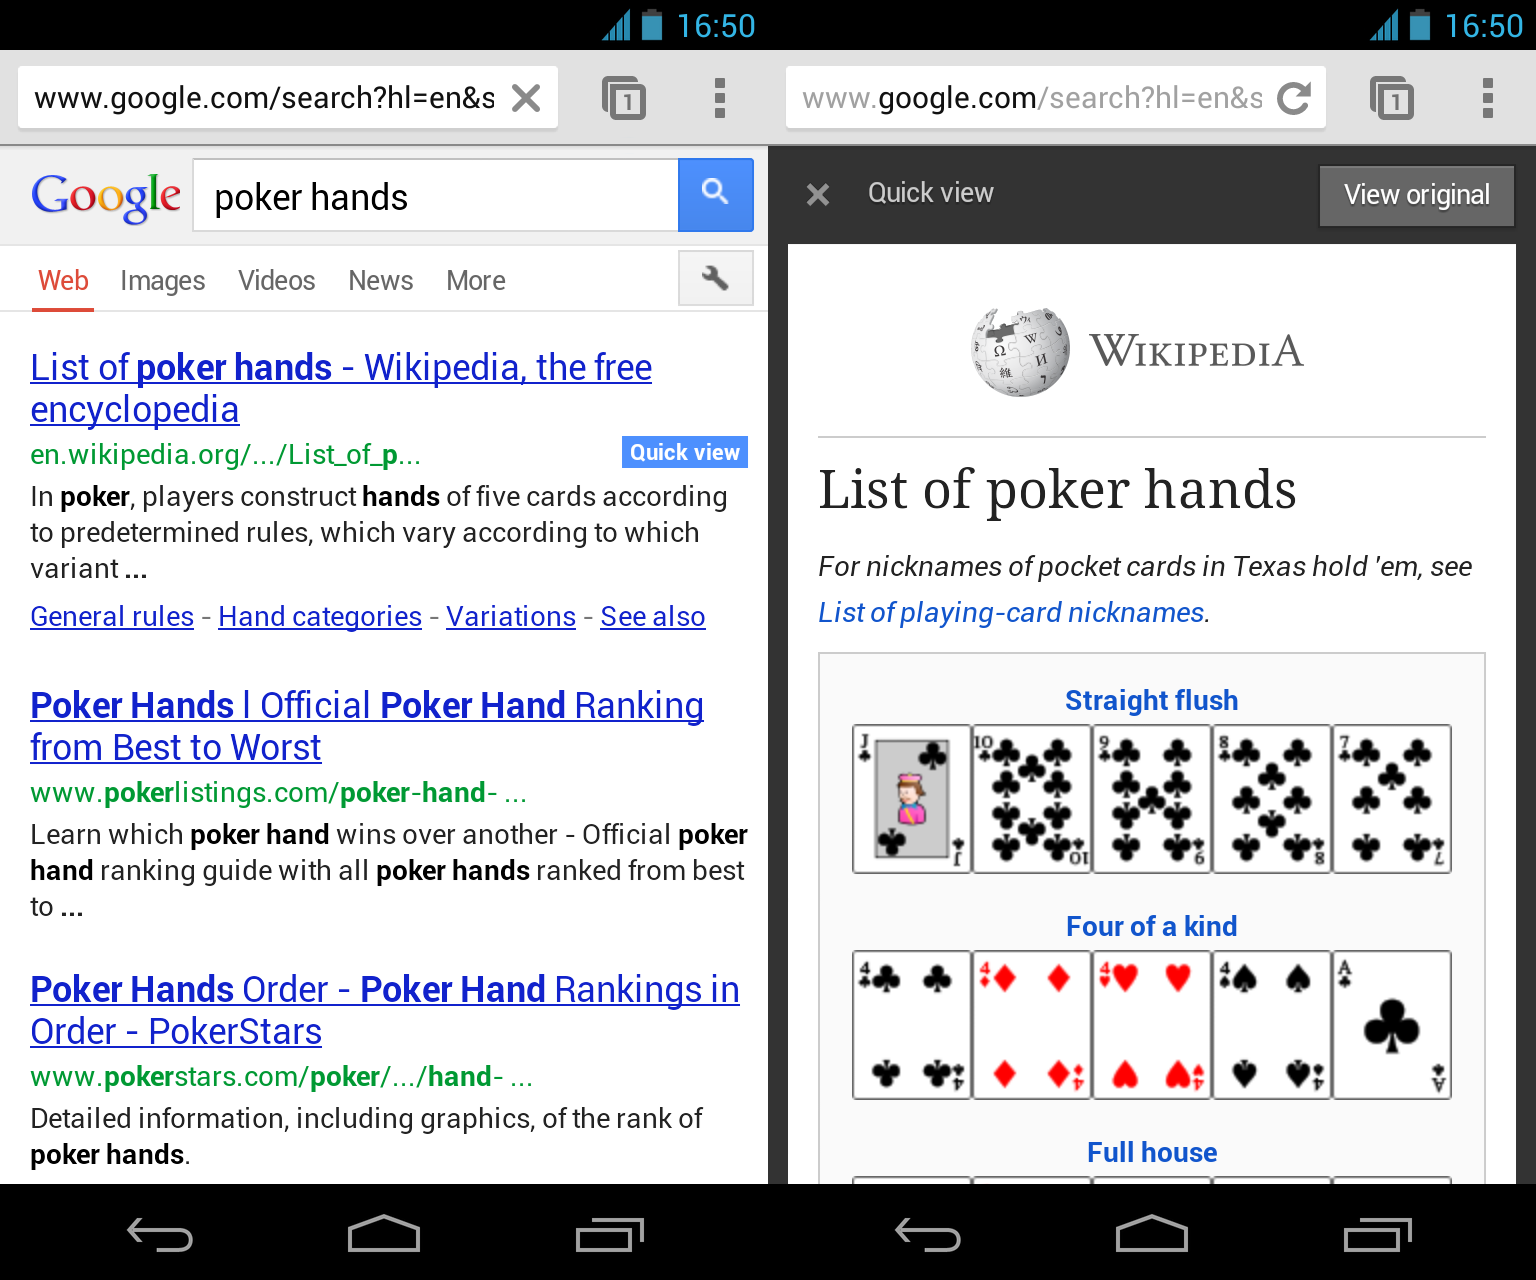 Google Updates Mobile Search with Site Links, Quick View ...